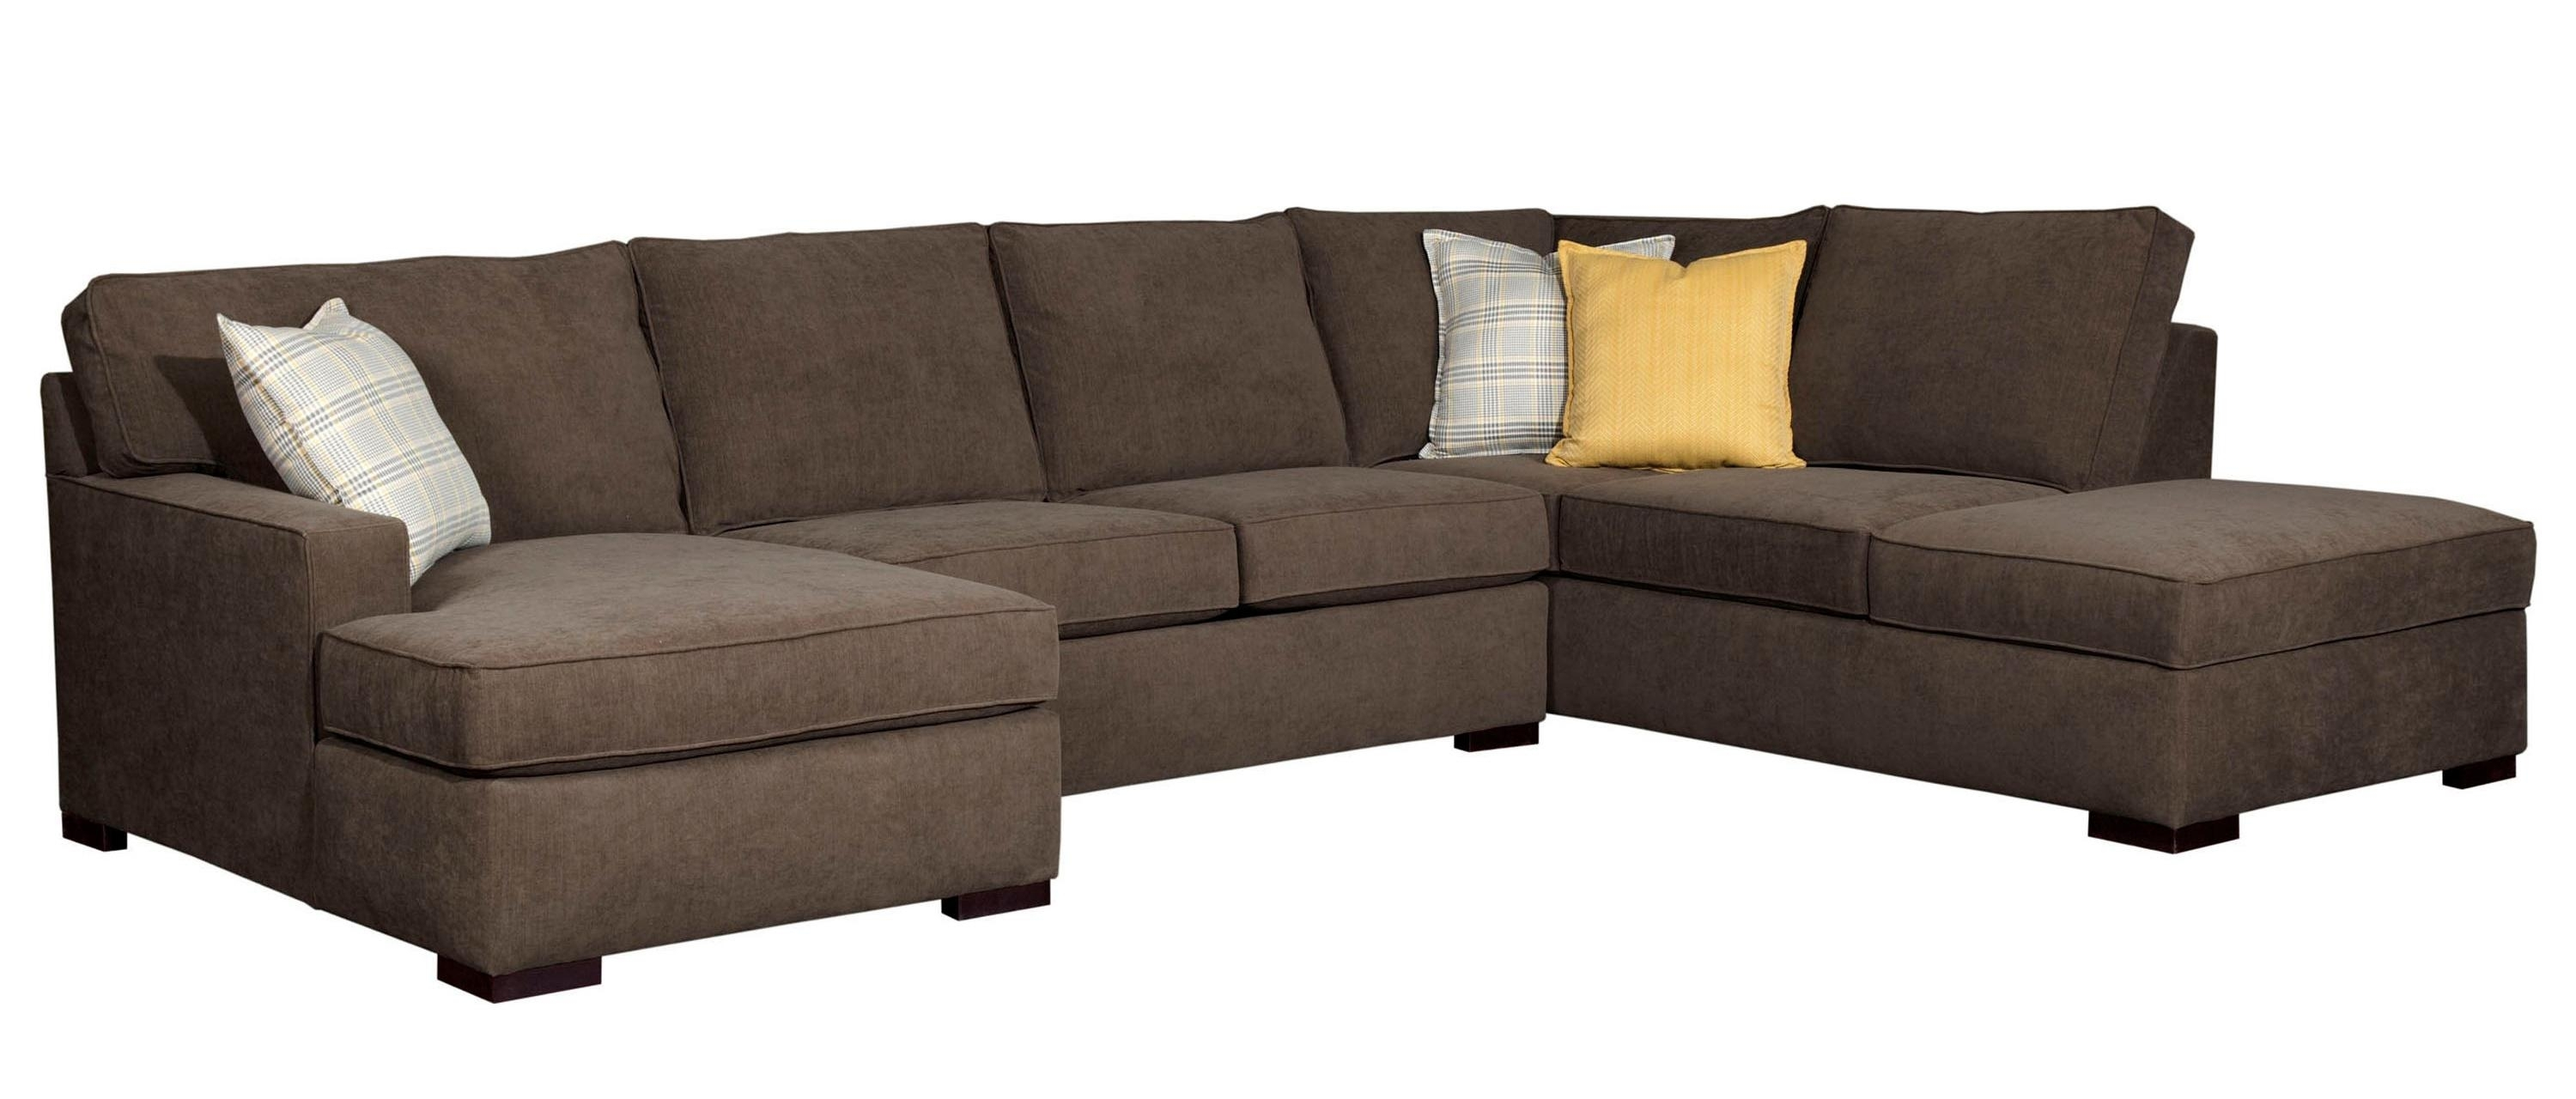 Broyhill Furniture Raphael Contemporary Sectional Sofa With Laf Pertaining To Norfolk Grey 6 Piece Sectionals With Laf Chaise (View 17 of 25)